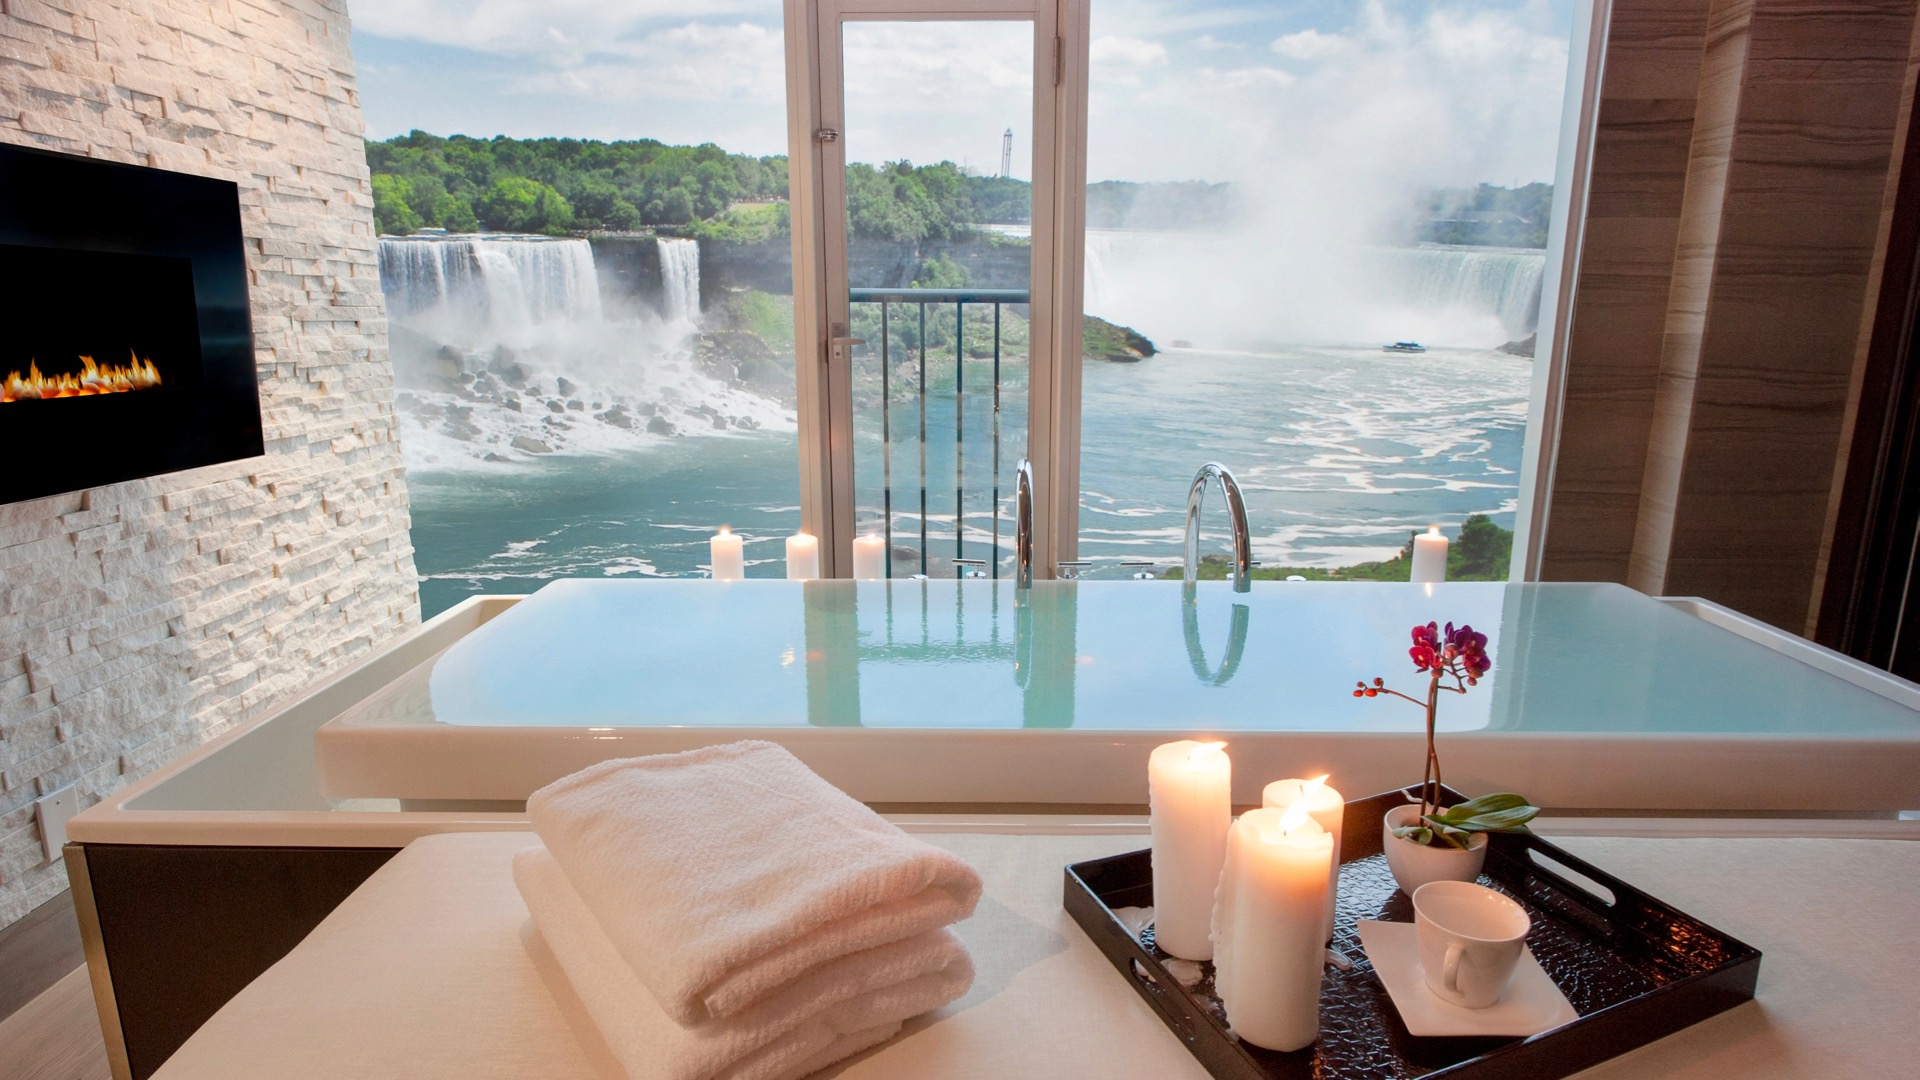 Hotels With Jacuzzi In Room Niagara Falls Ontario